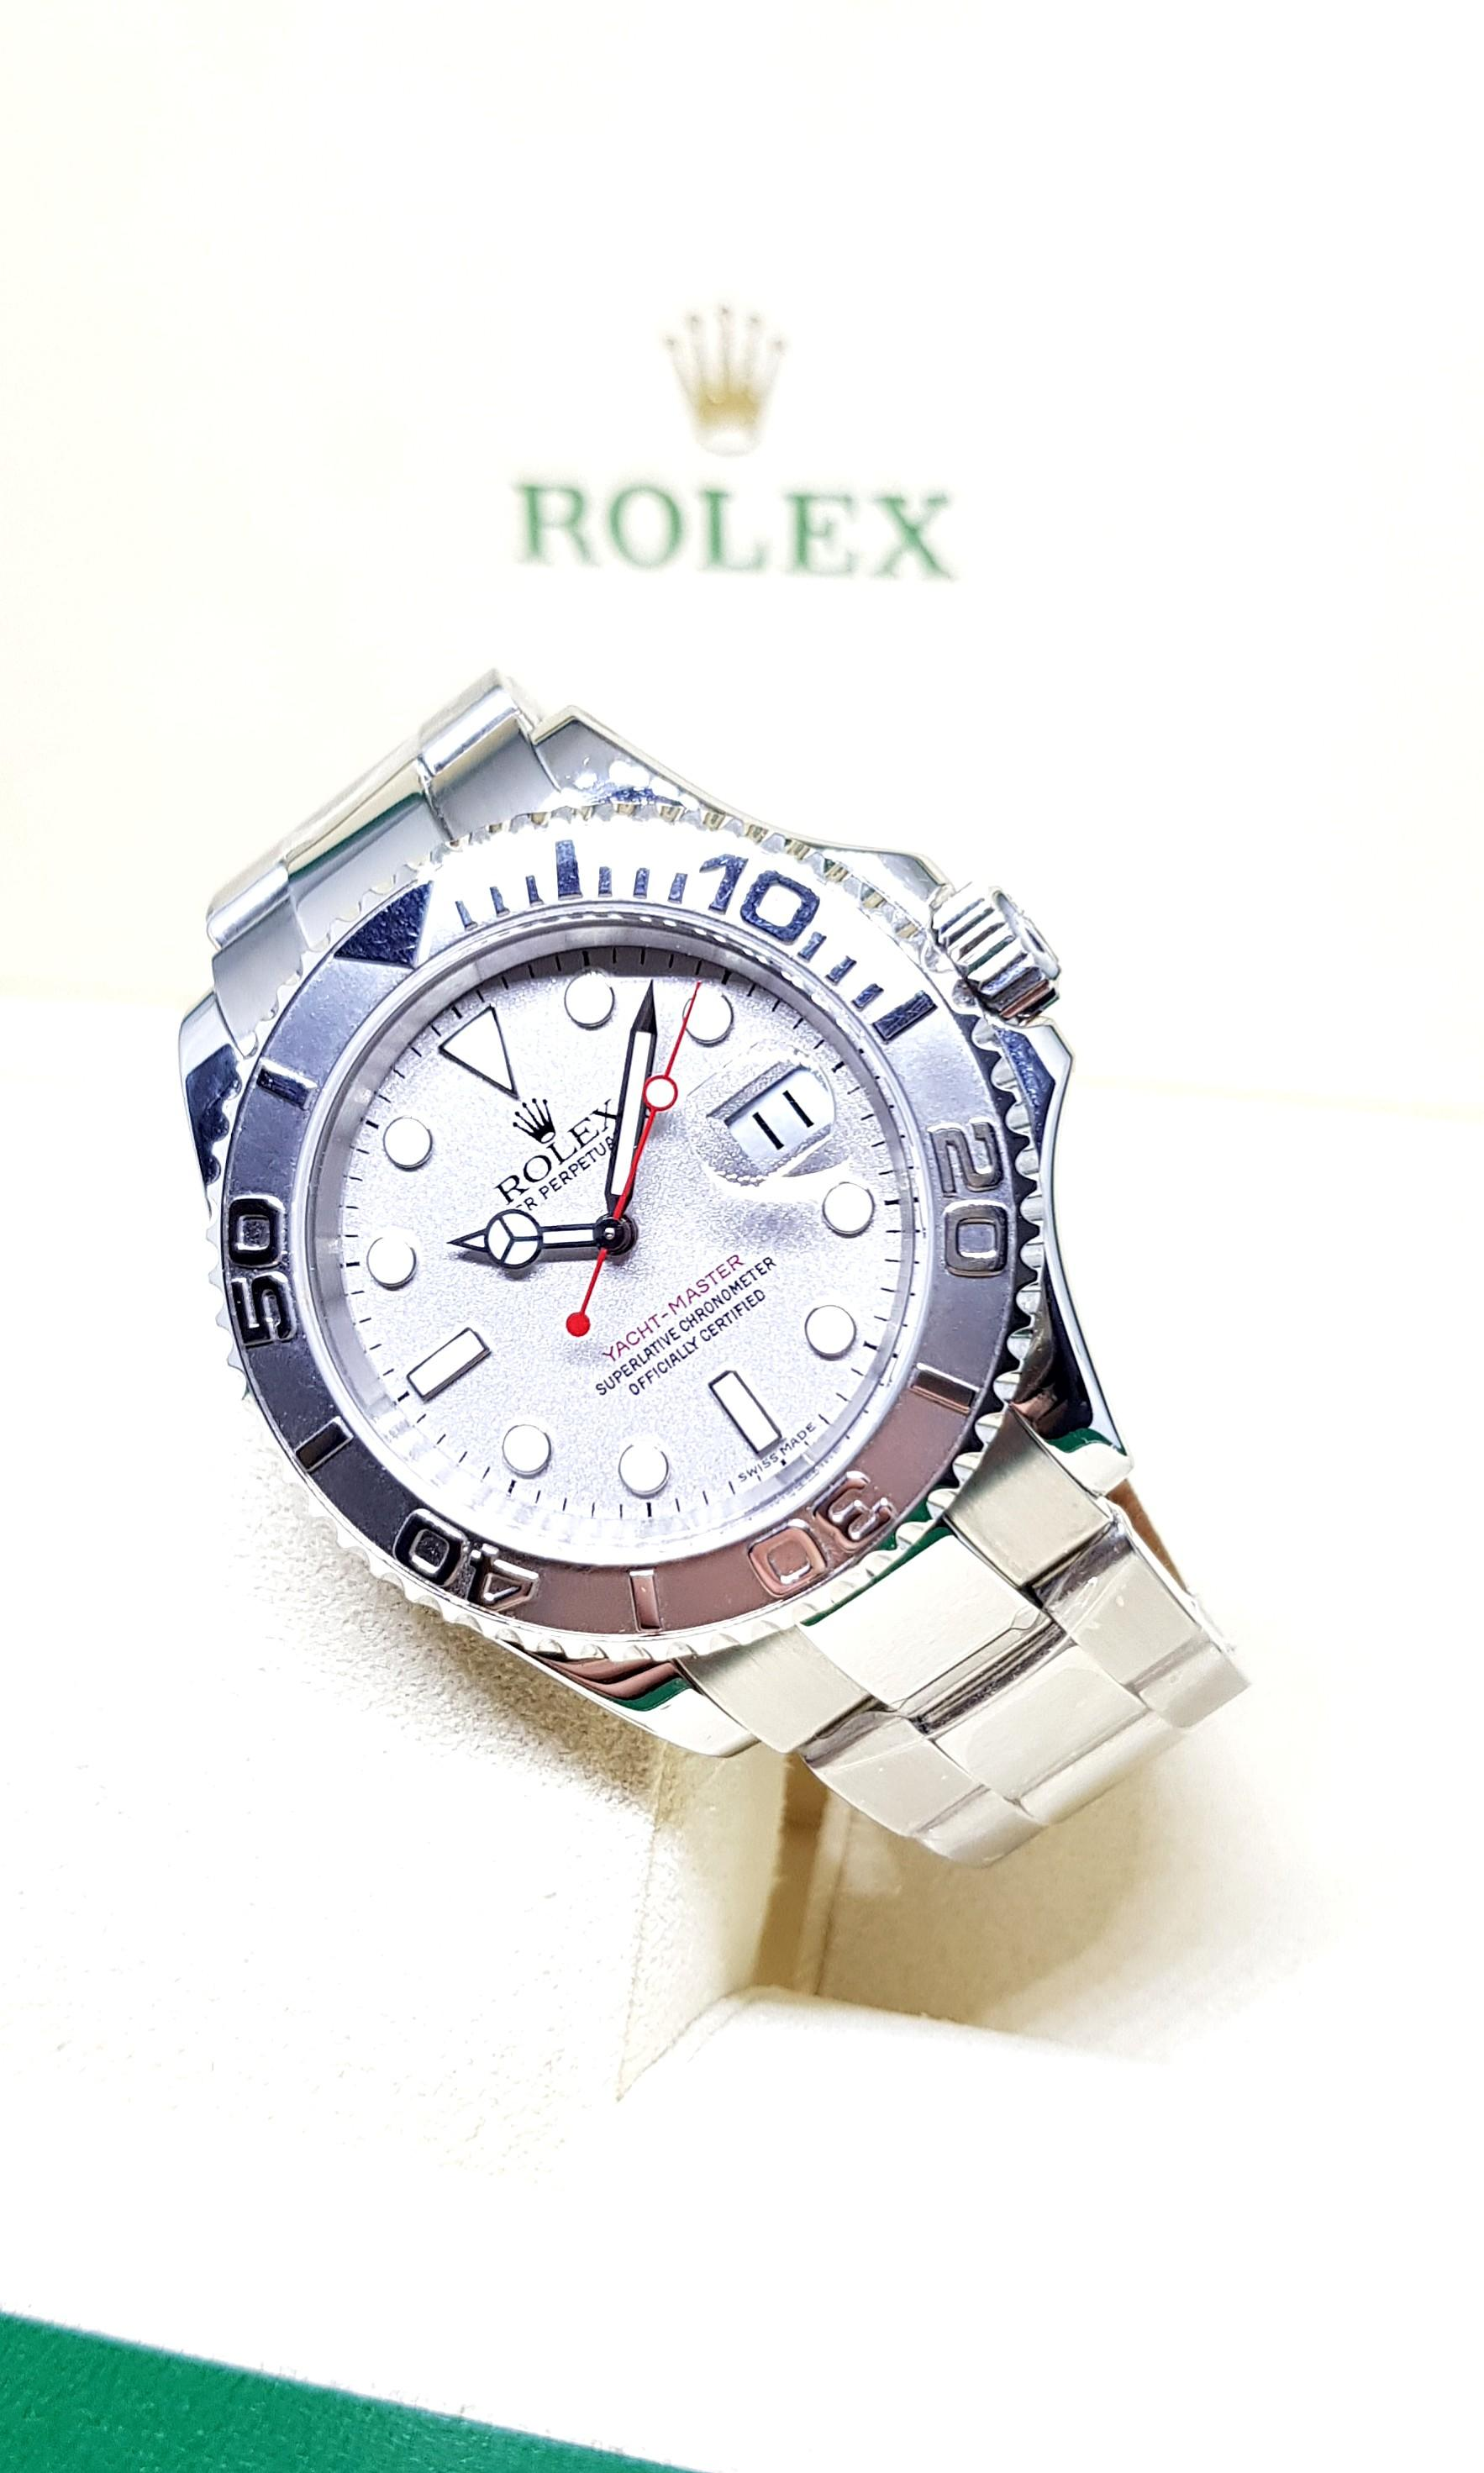 (NOT AVAILABLE) Rolex Platinium Yachtmaster 40mm REF: 16622